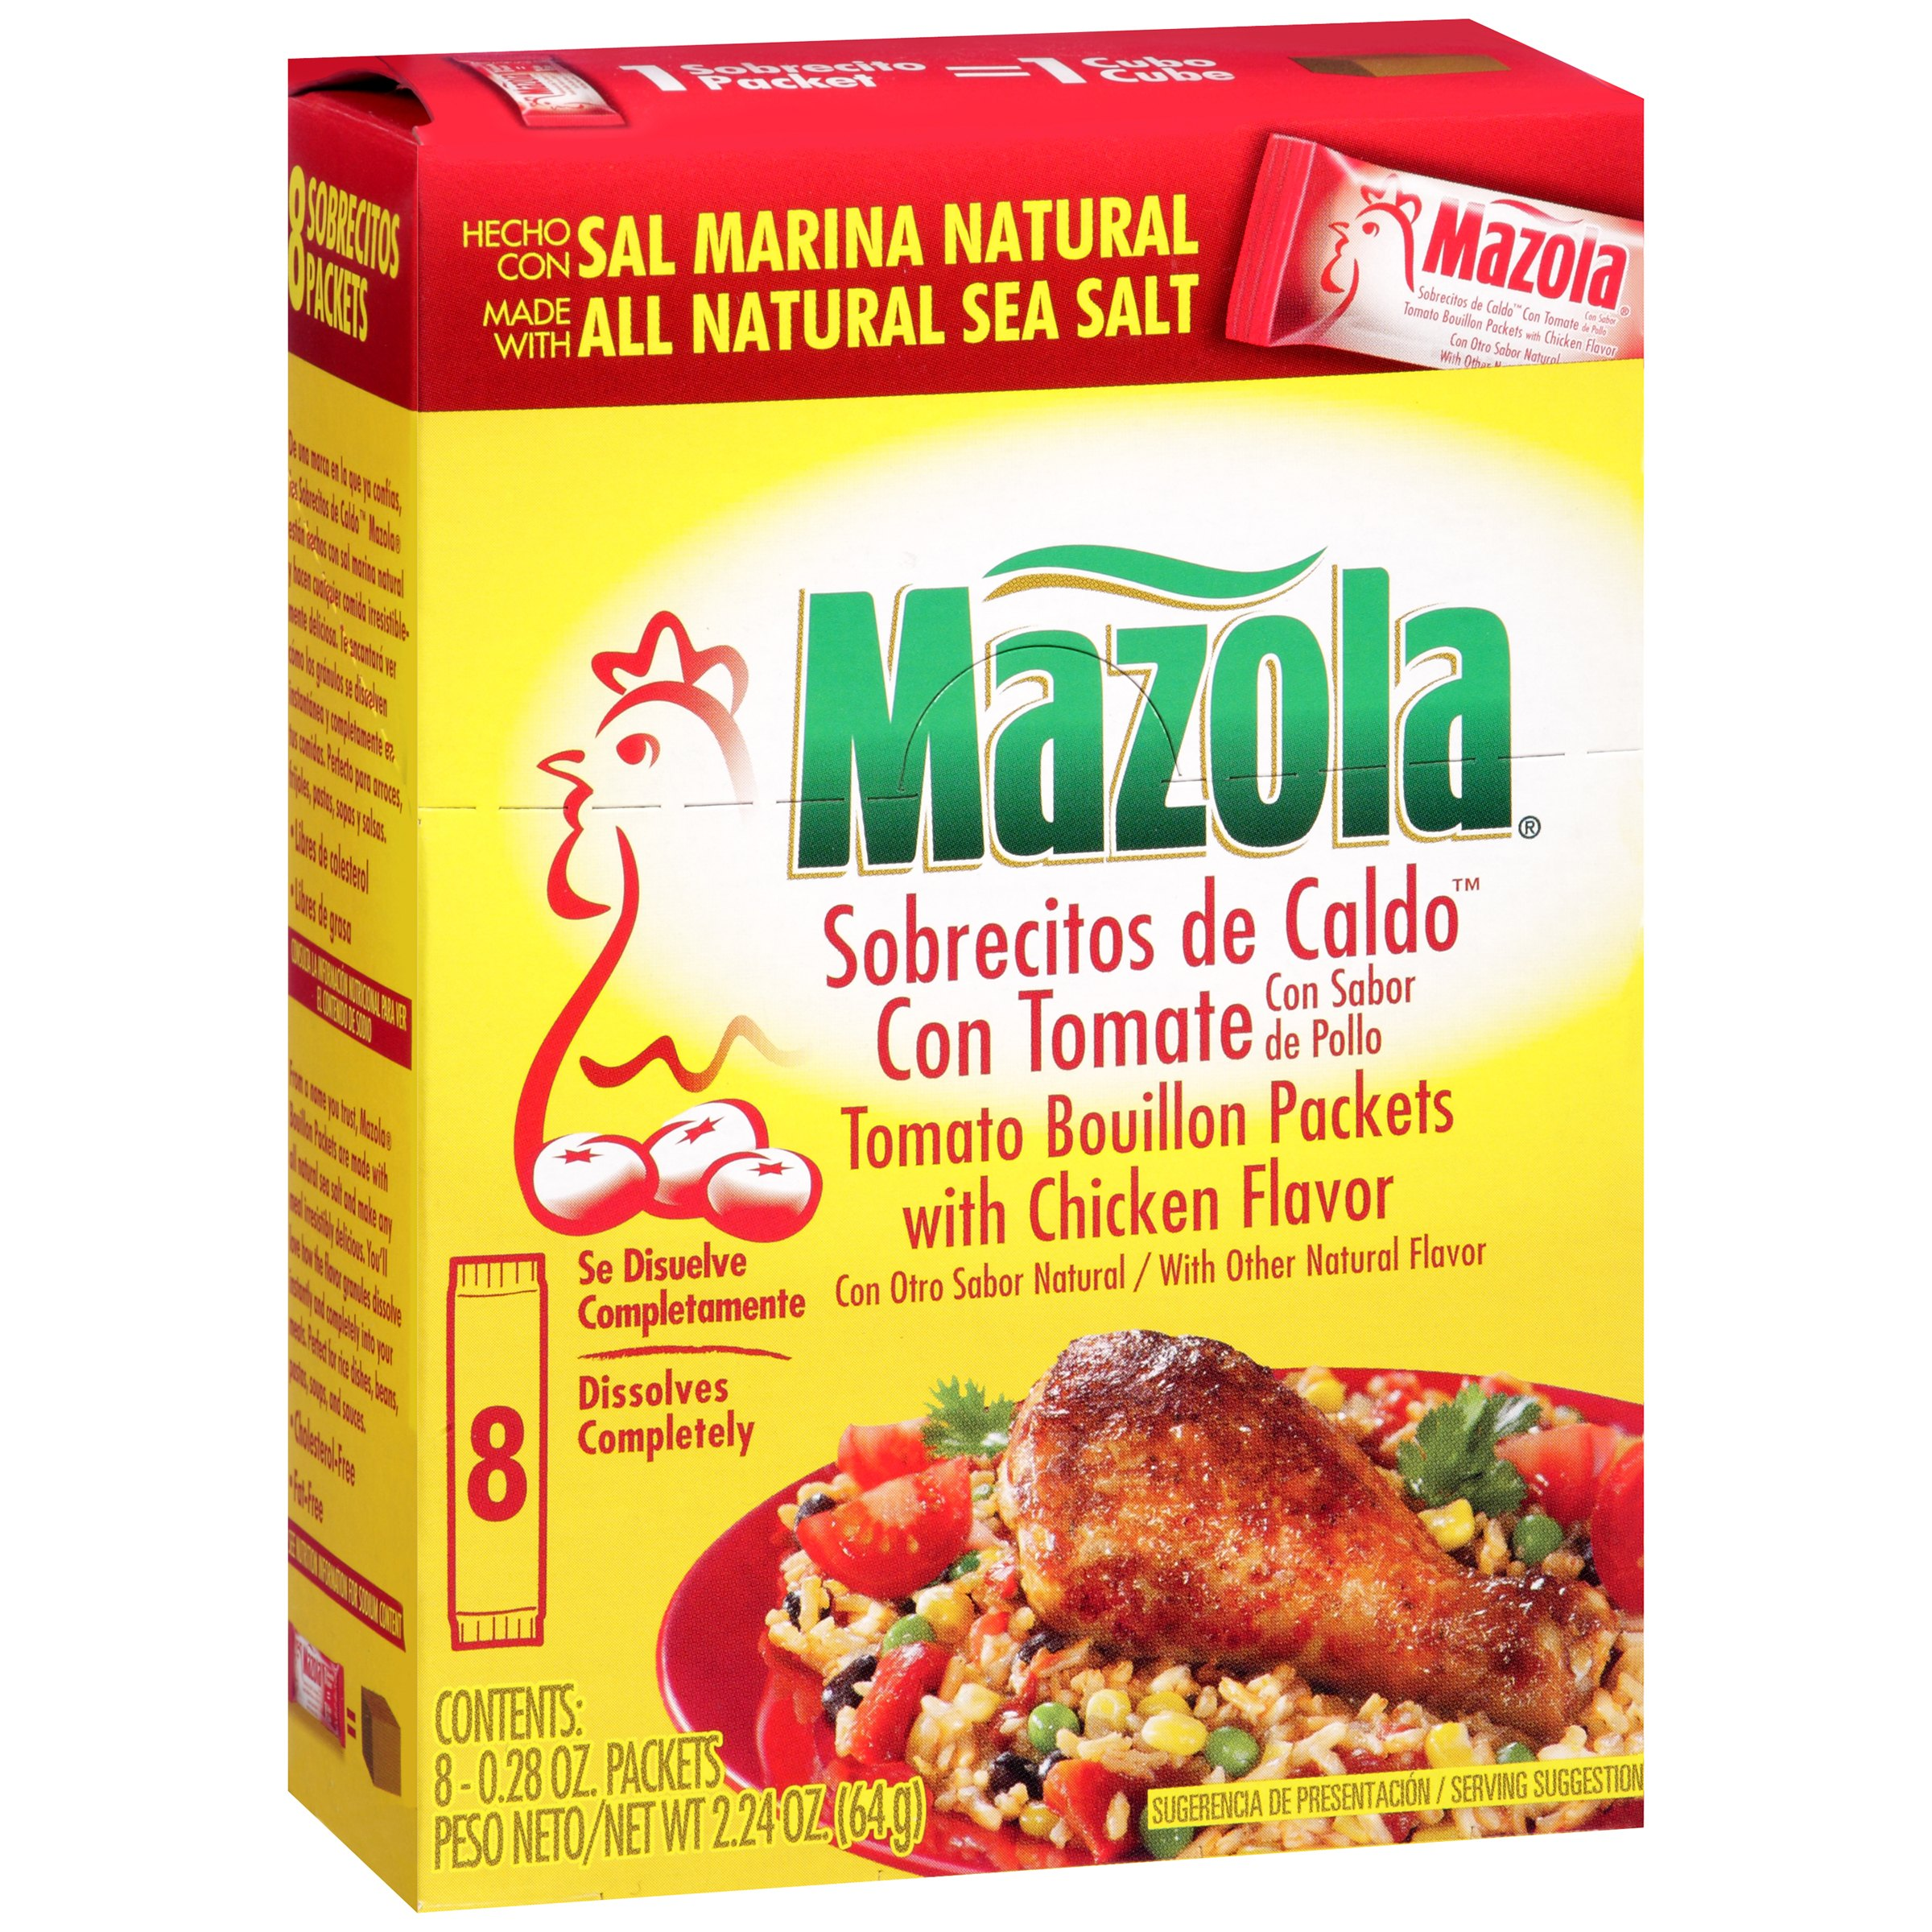 Mazola® Tomato Bouillon Packets with Chicken Flavor 8 ct.